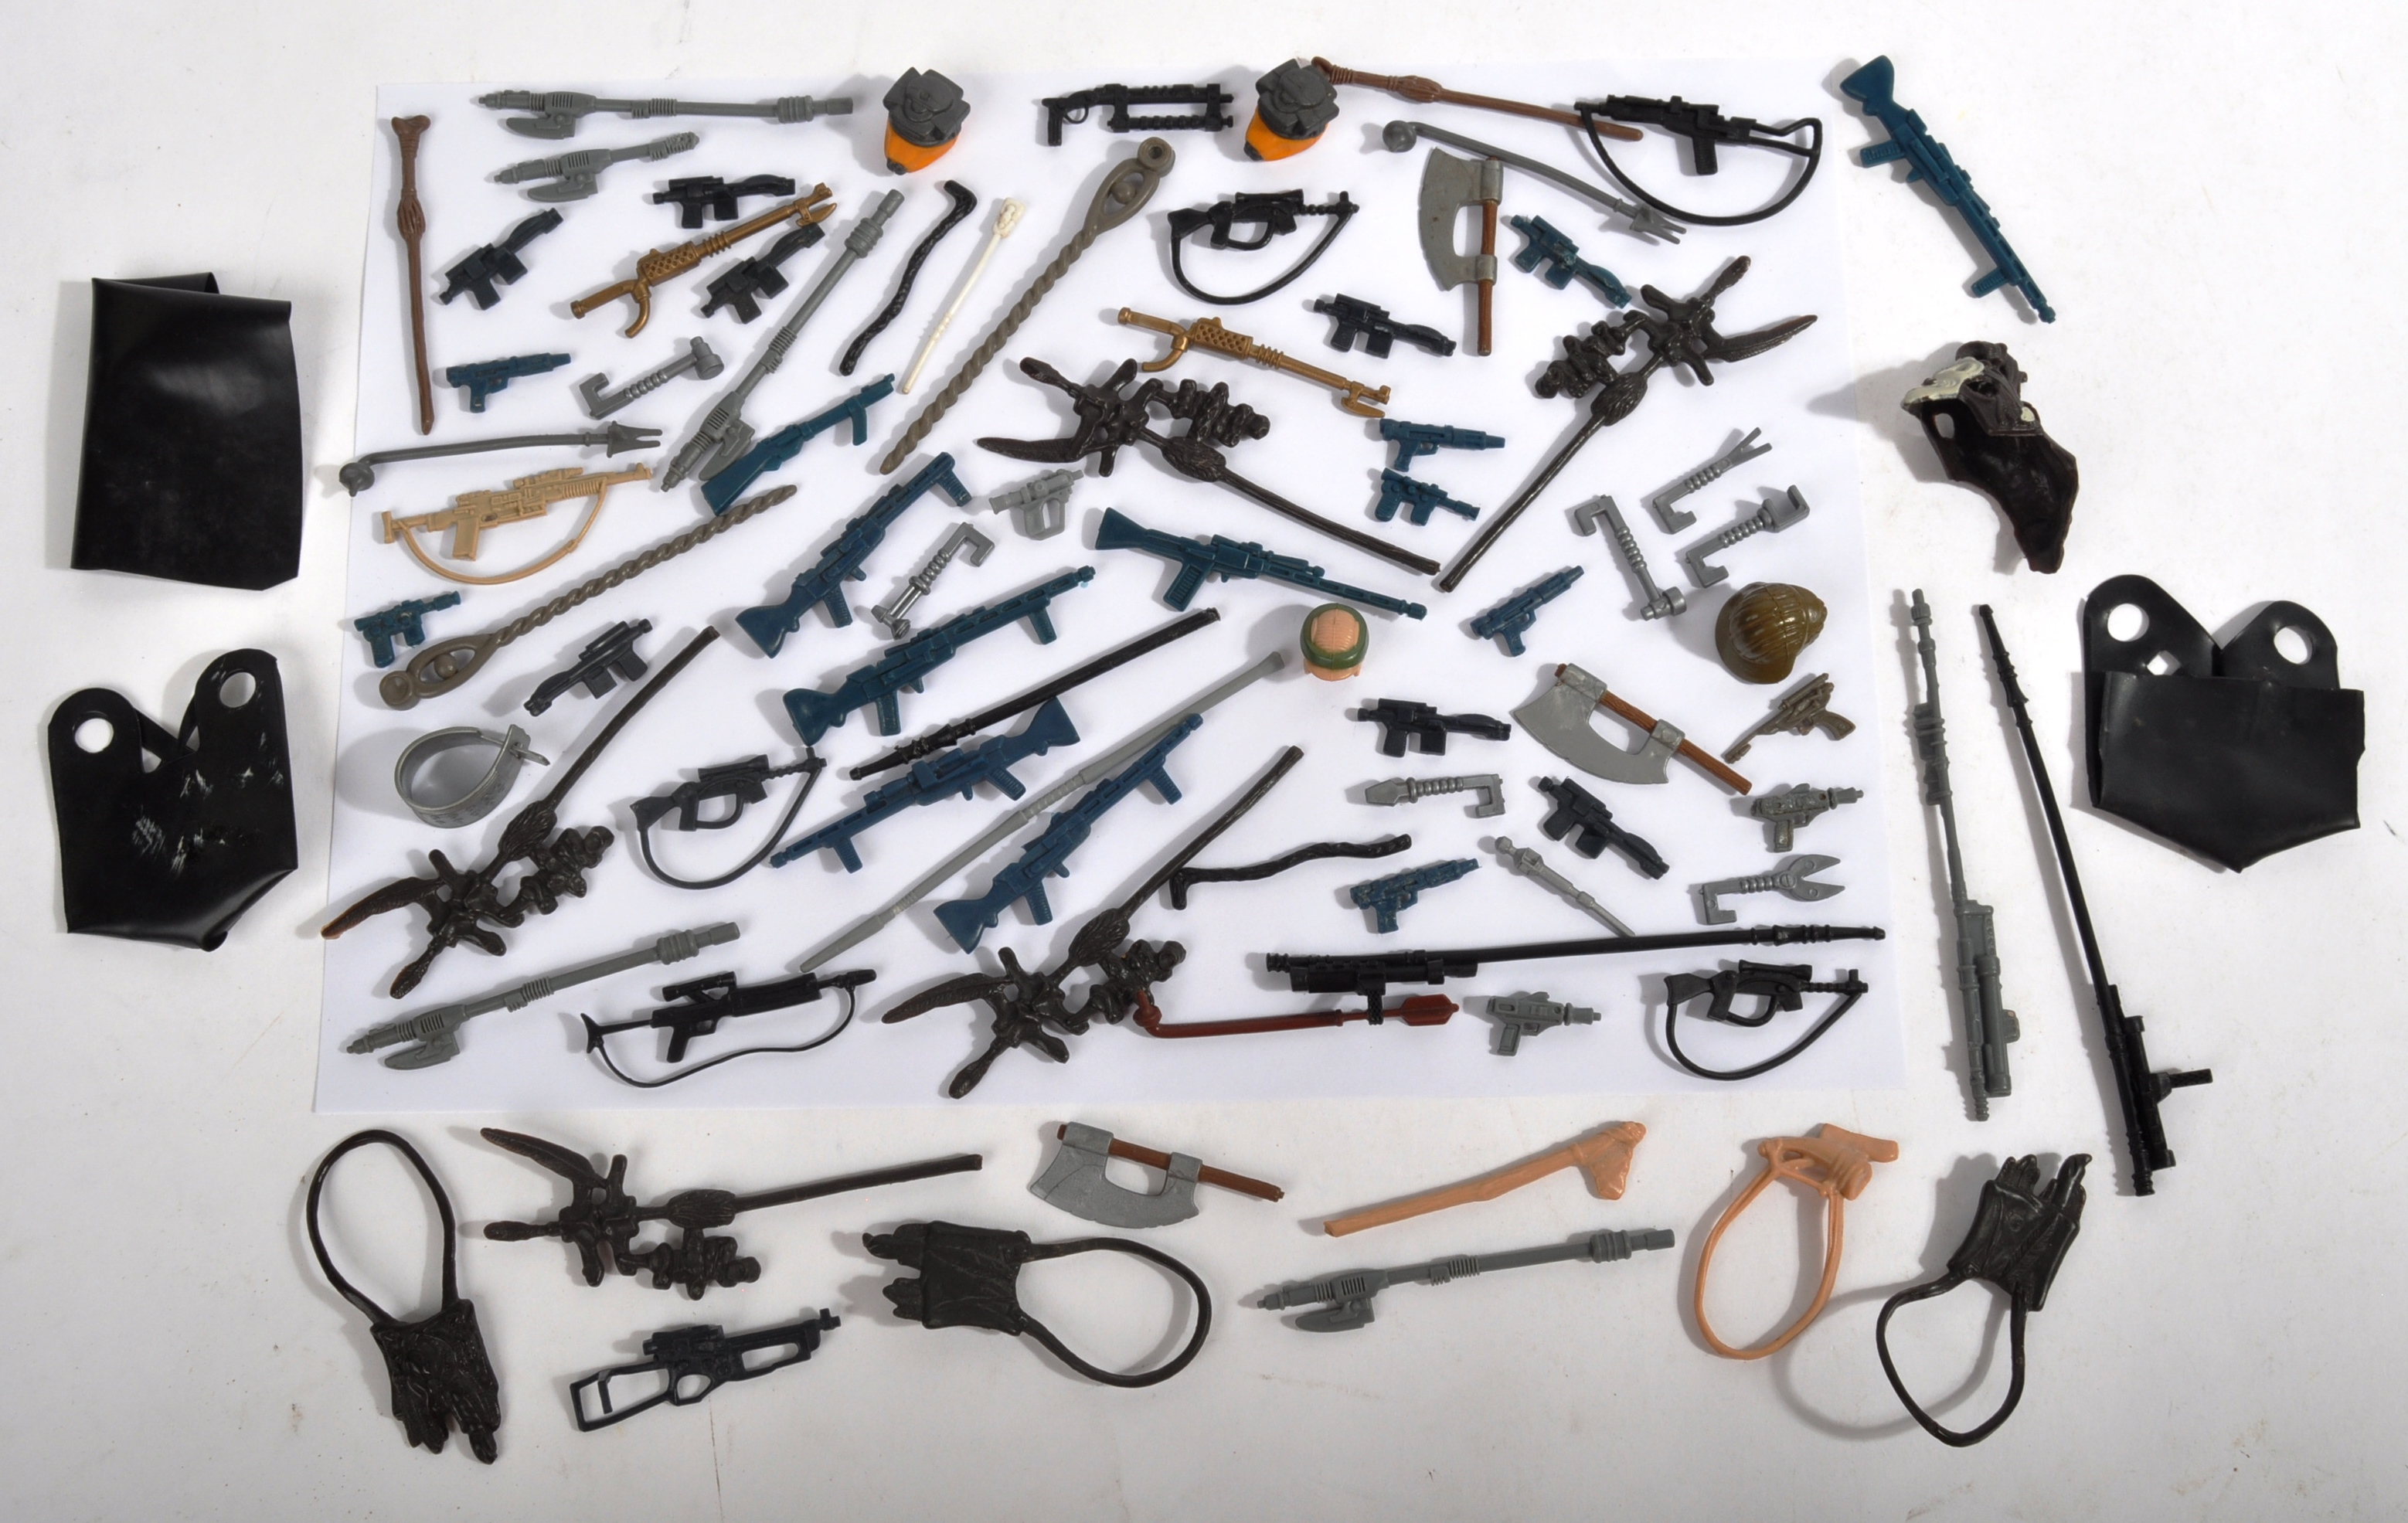 STAR WARS - LARGE COLLECTION OF ORIGINAL VINTAGE WEAPONS & ACCESSORIES.